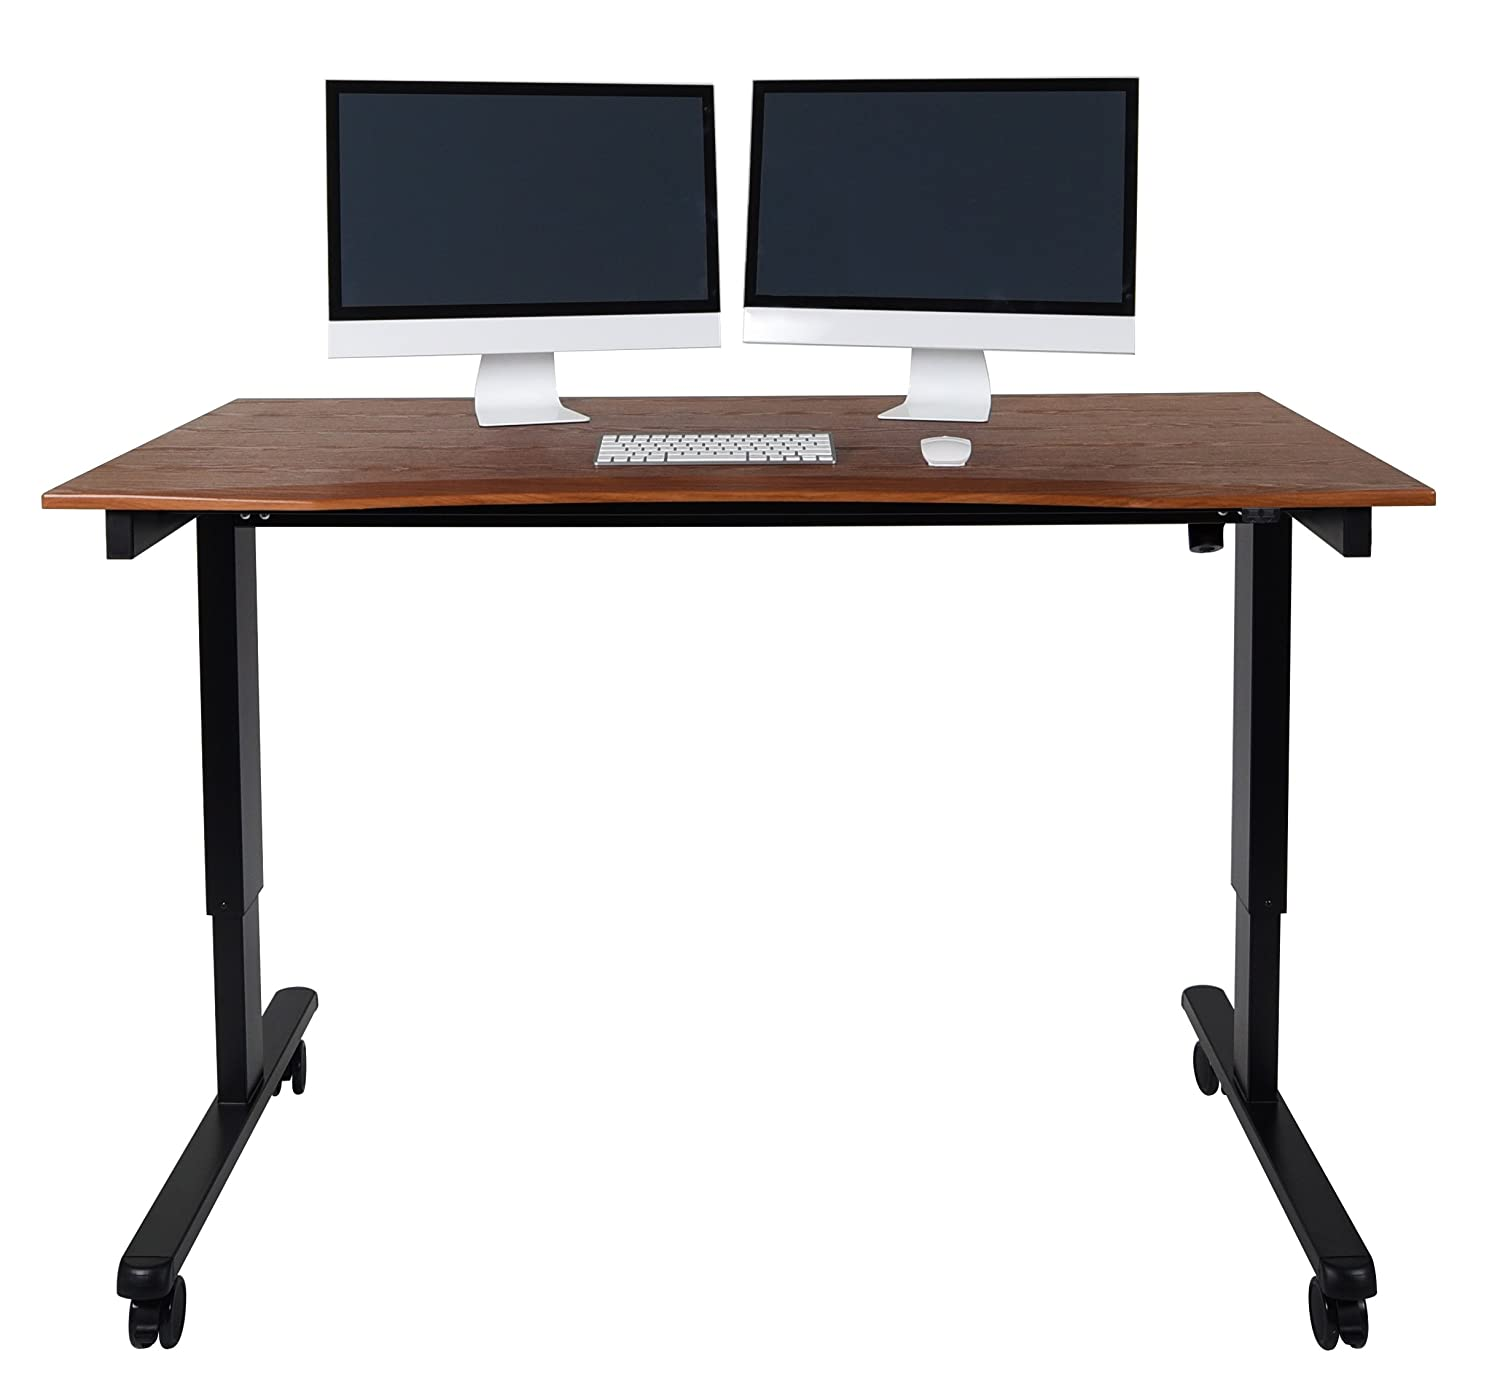 Amazoncom 60 Electric Stand Up Desk with Comfort Curved Edge